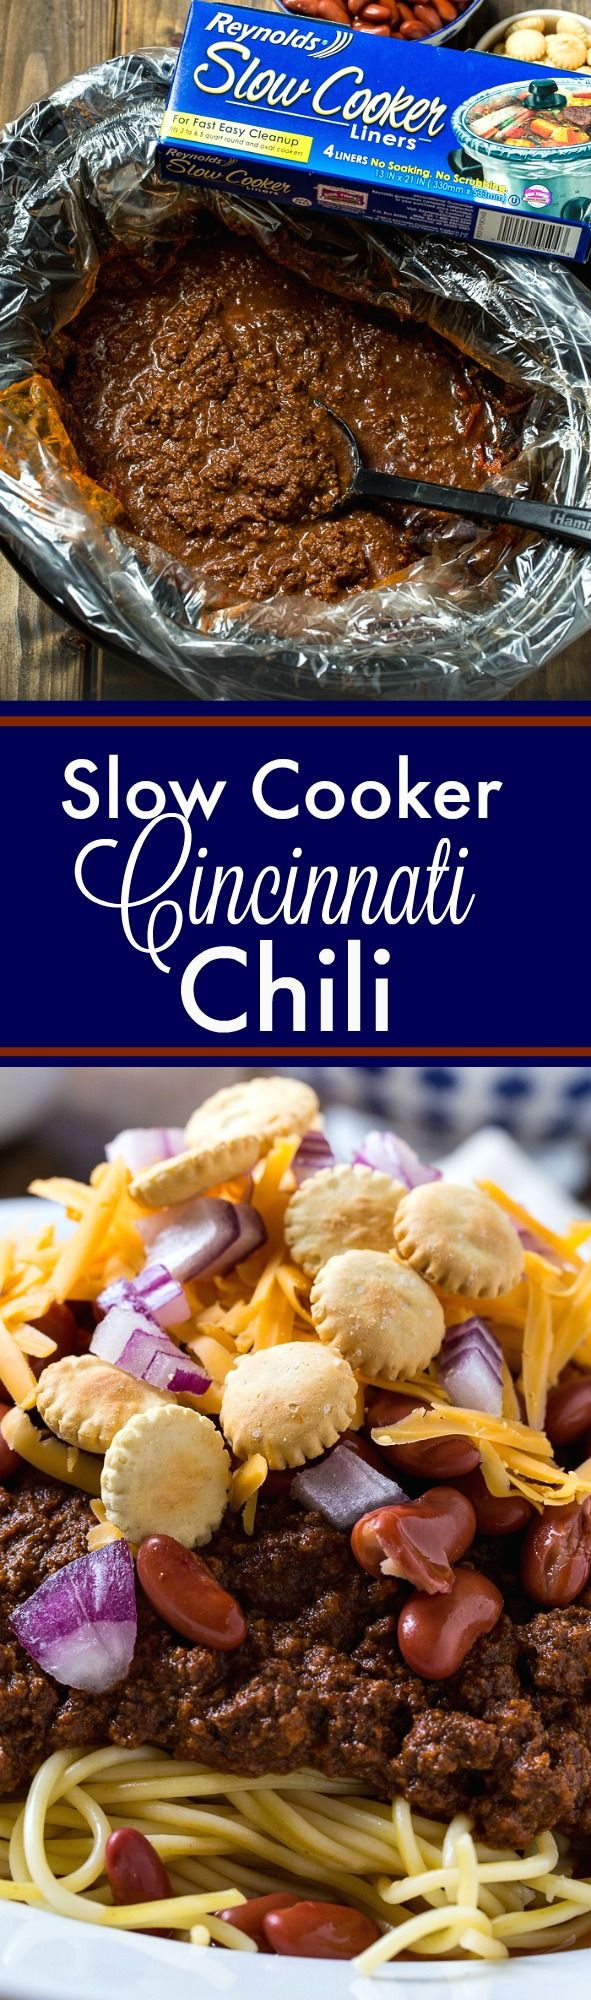 Slow Cooker Cincinnati Chili makes a comforting and economical meal. So easy to make and no cleanup if you use a Reynolds Slow Cooker Liner. #ad #ReynoldsCrowd